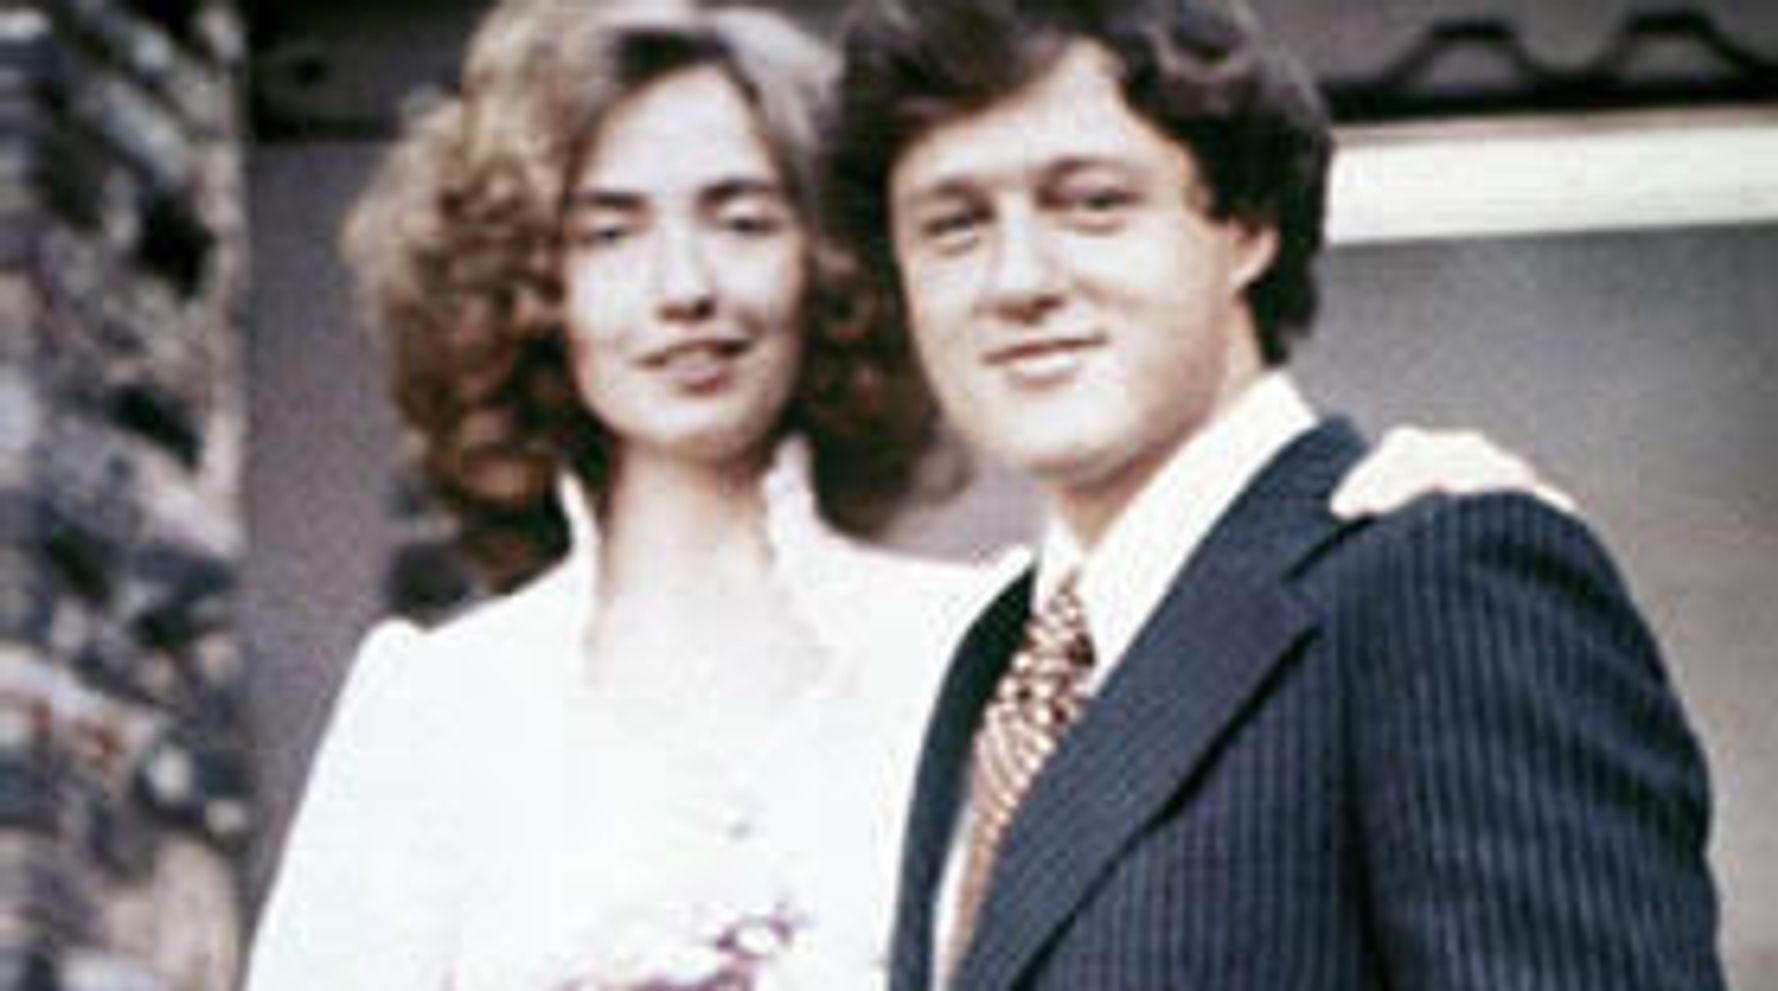 Here S How Hillary Clinton S Wedding Compares To Donald Trump S